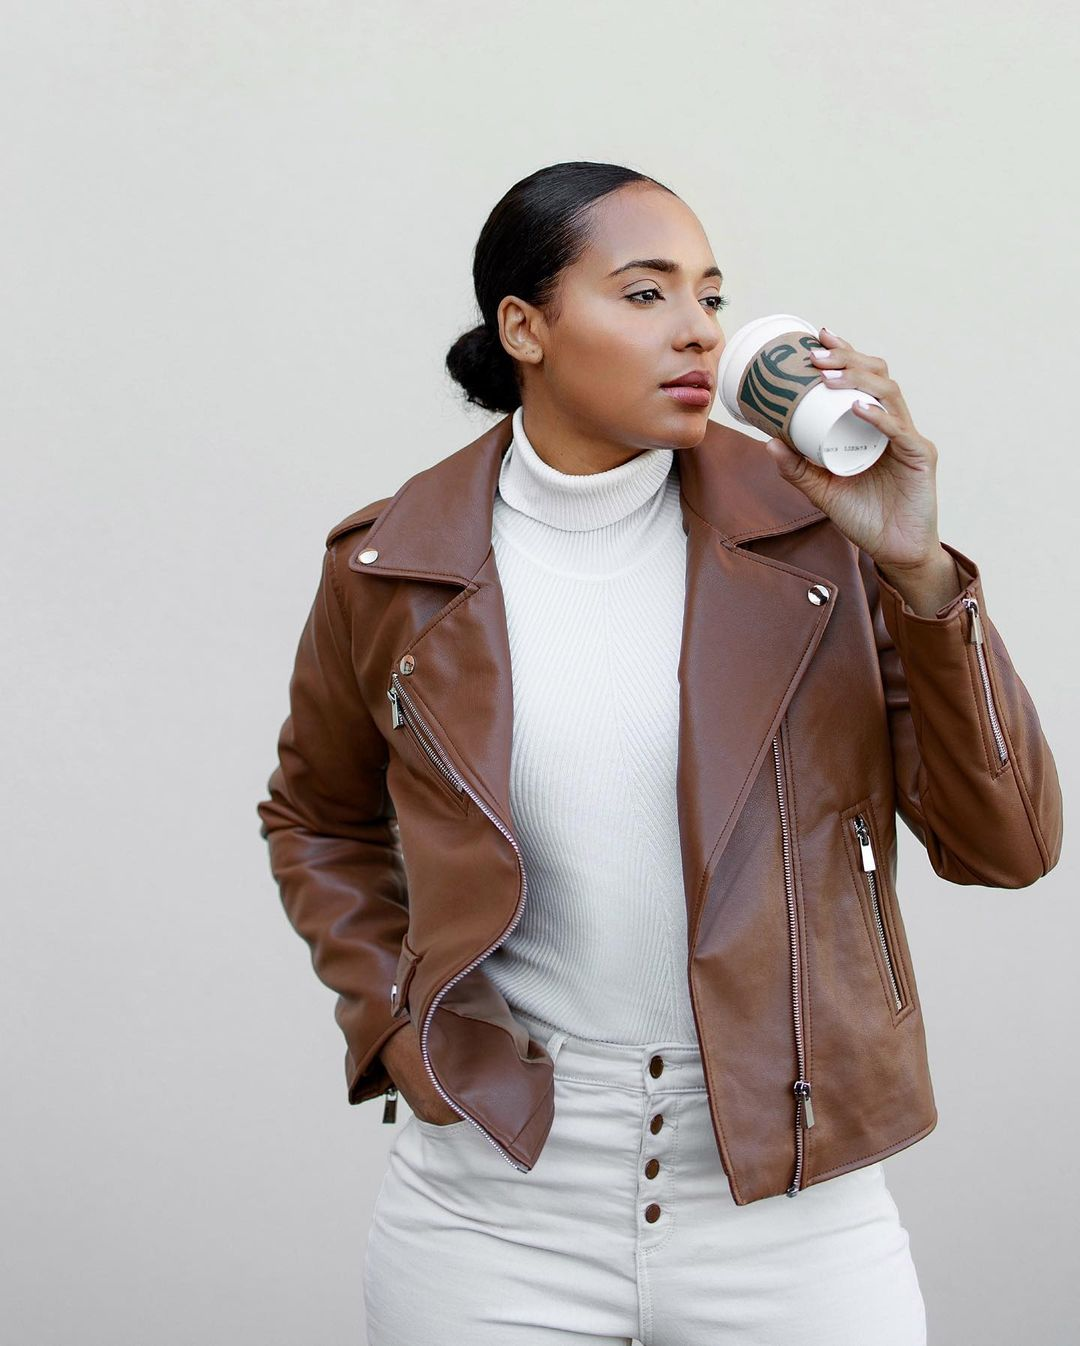 a woman wearing a white outfit with a brown vegan leather moto jacket holding a starbucks coffee